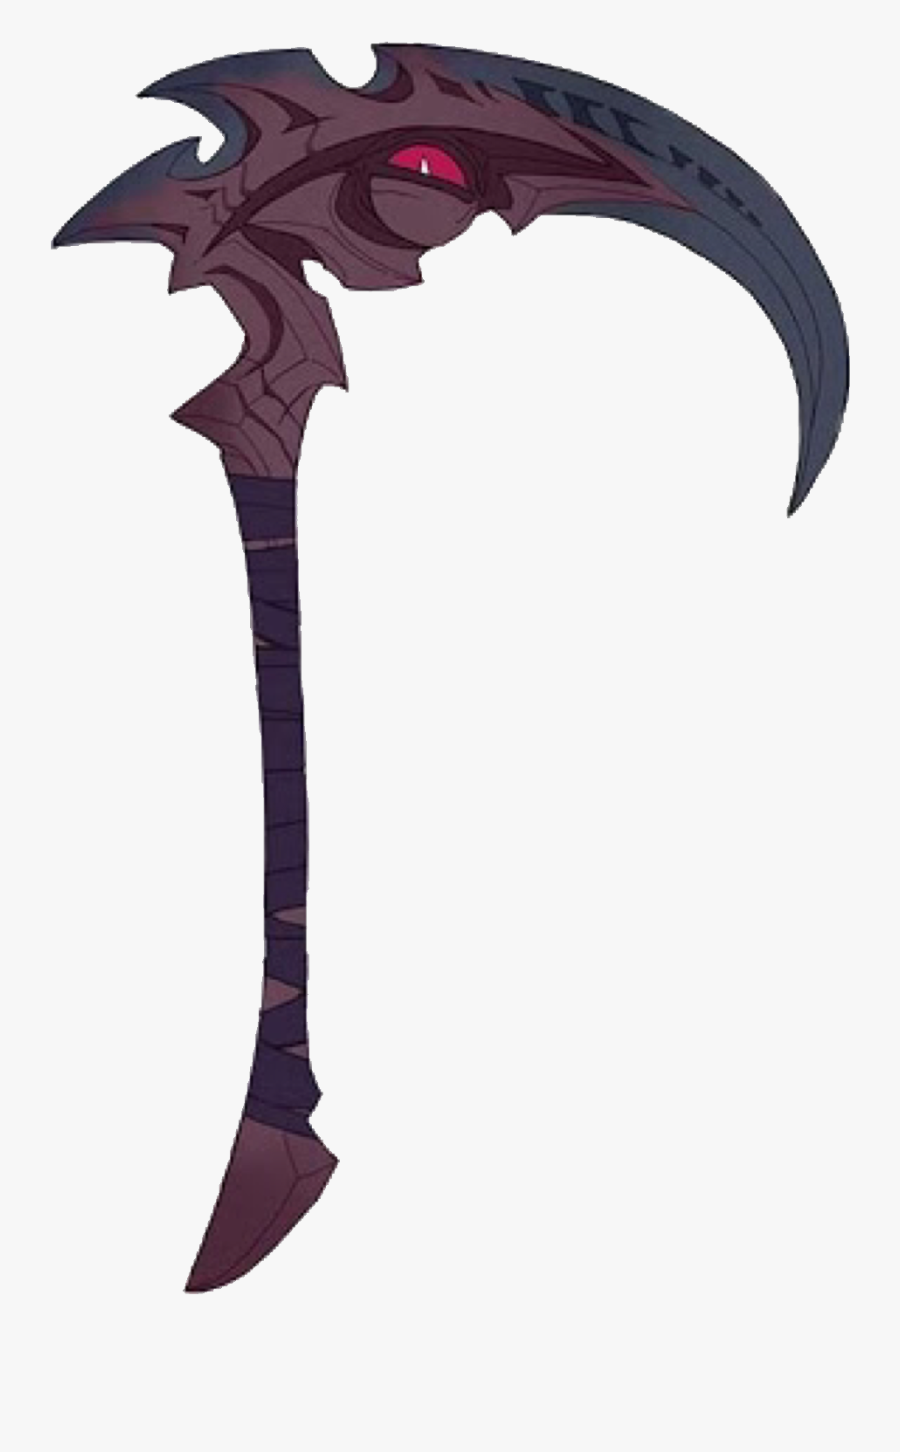 Scythe Weapon Demon Kayn Leagueoflegends Freetoedit Kayn League Of Legends Scythe Free Transparent Clipart Clipartkey